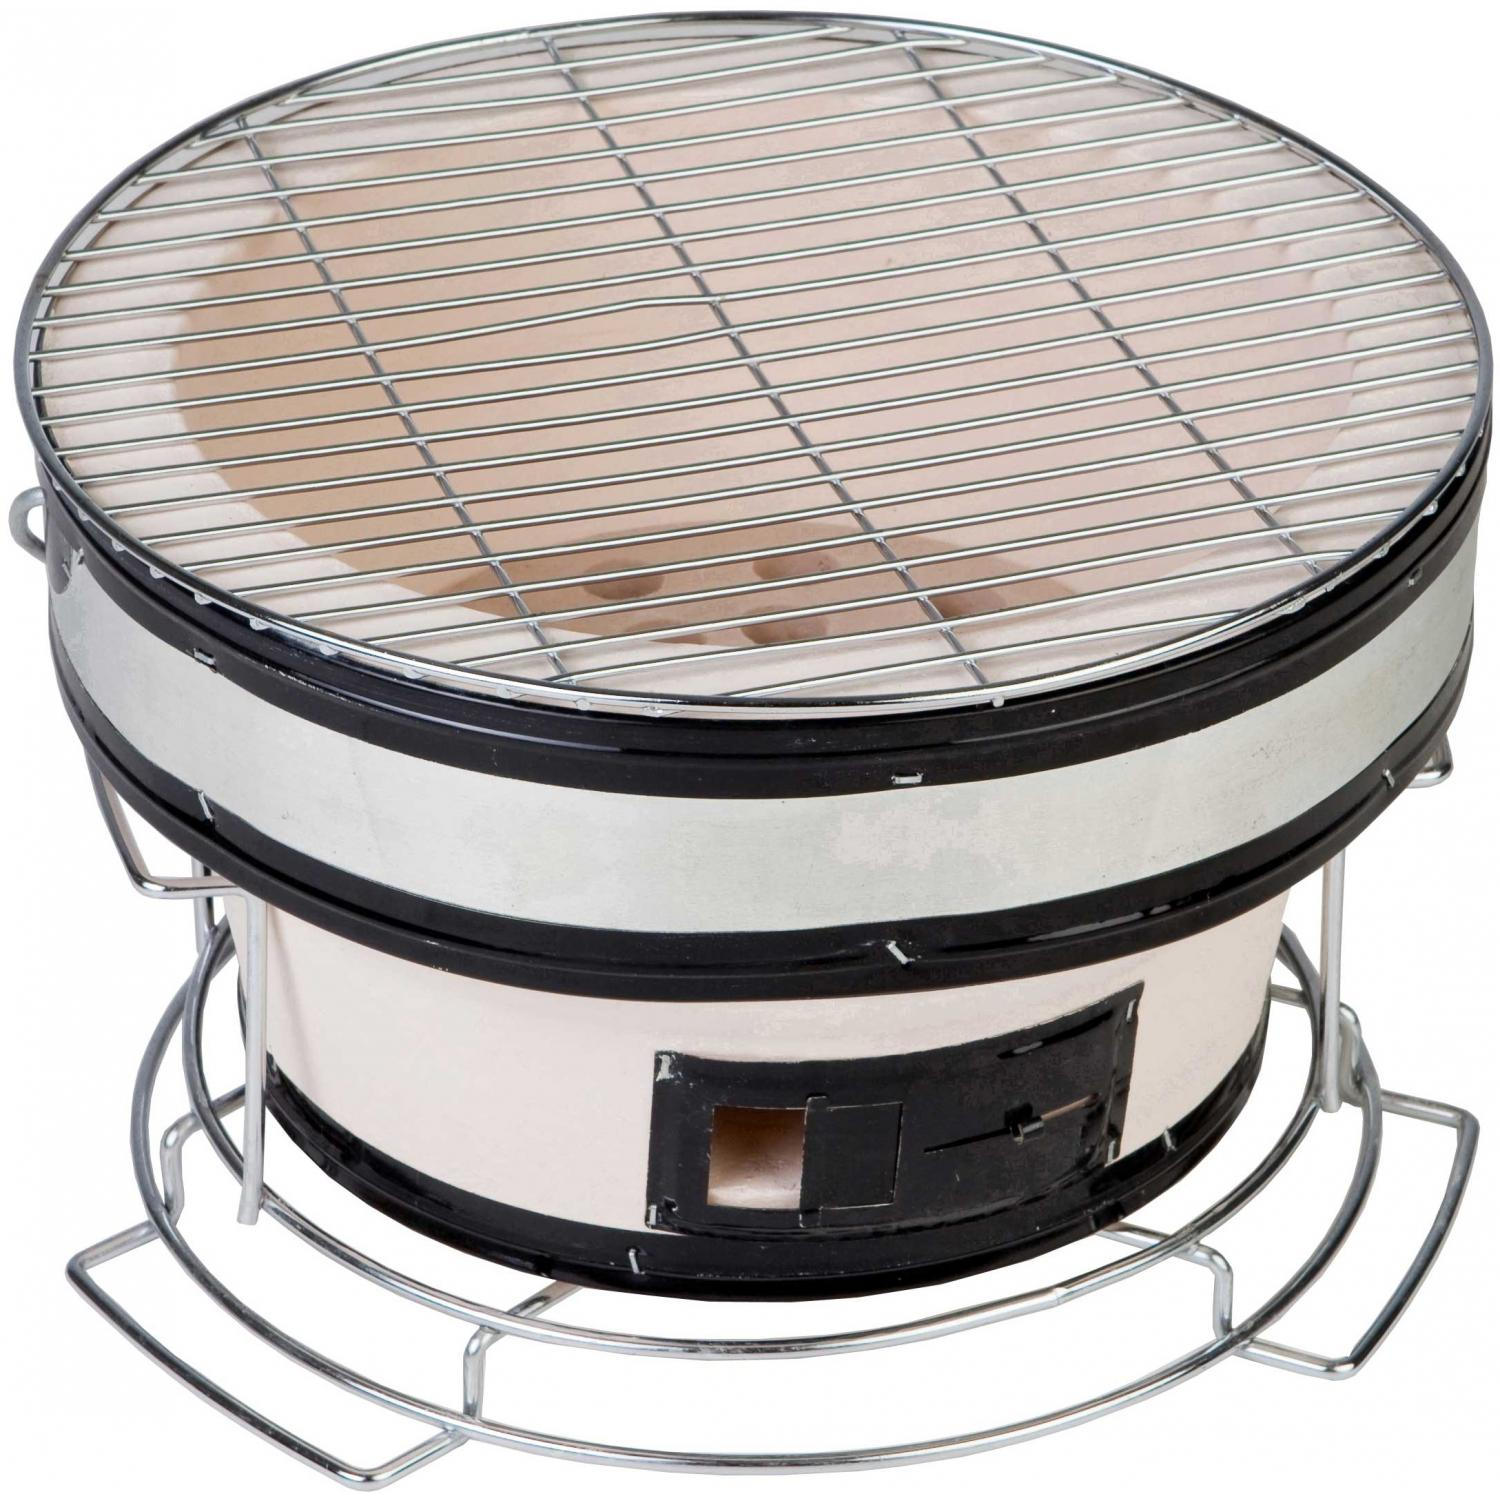 Fire Sense HotSpot Round Yakatori Table Top Charcoal Grill